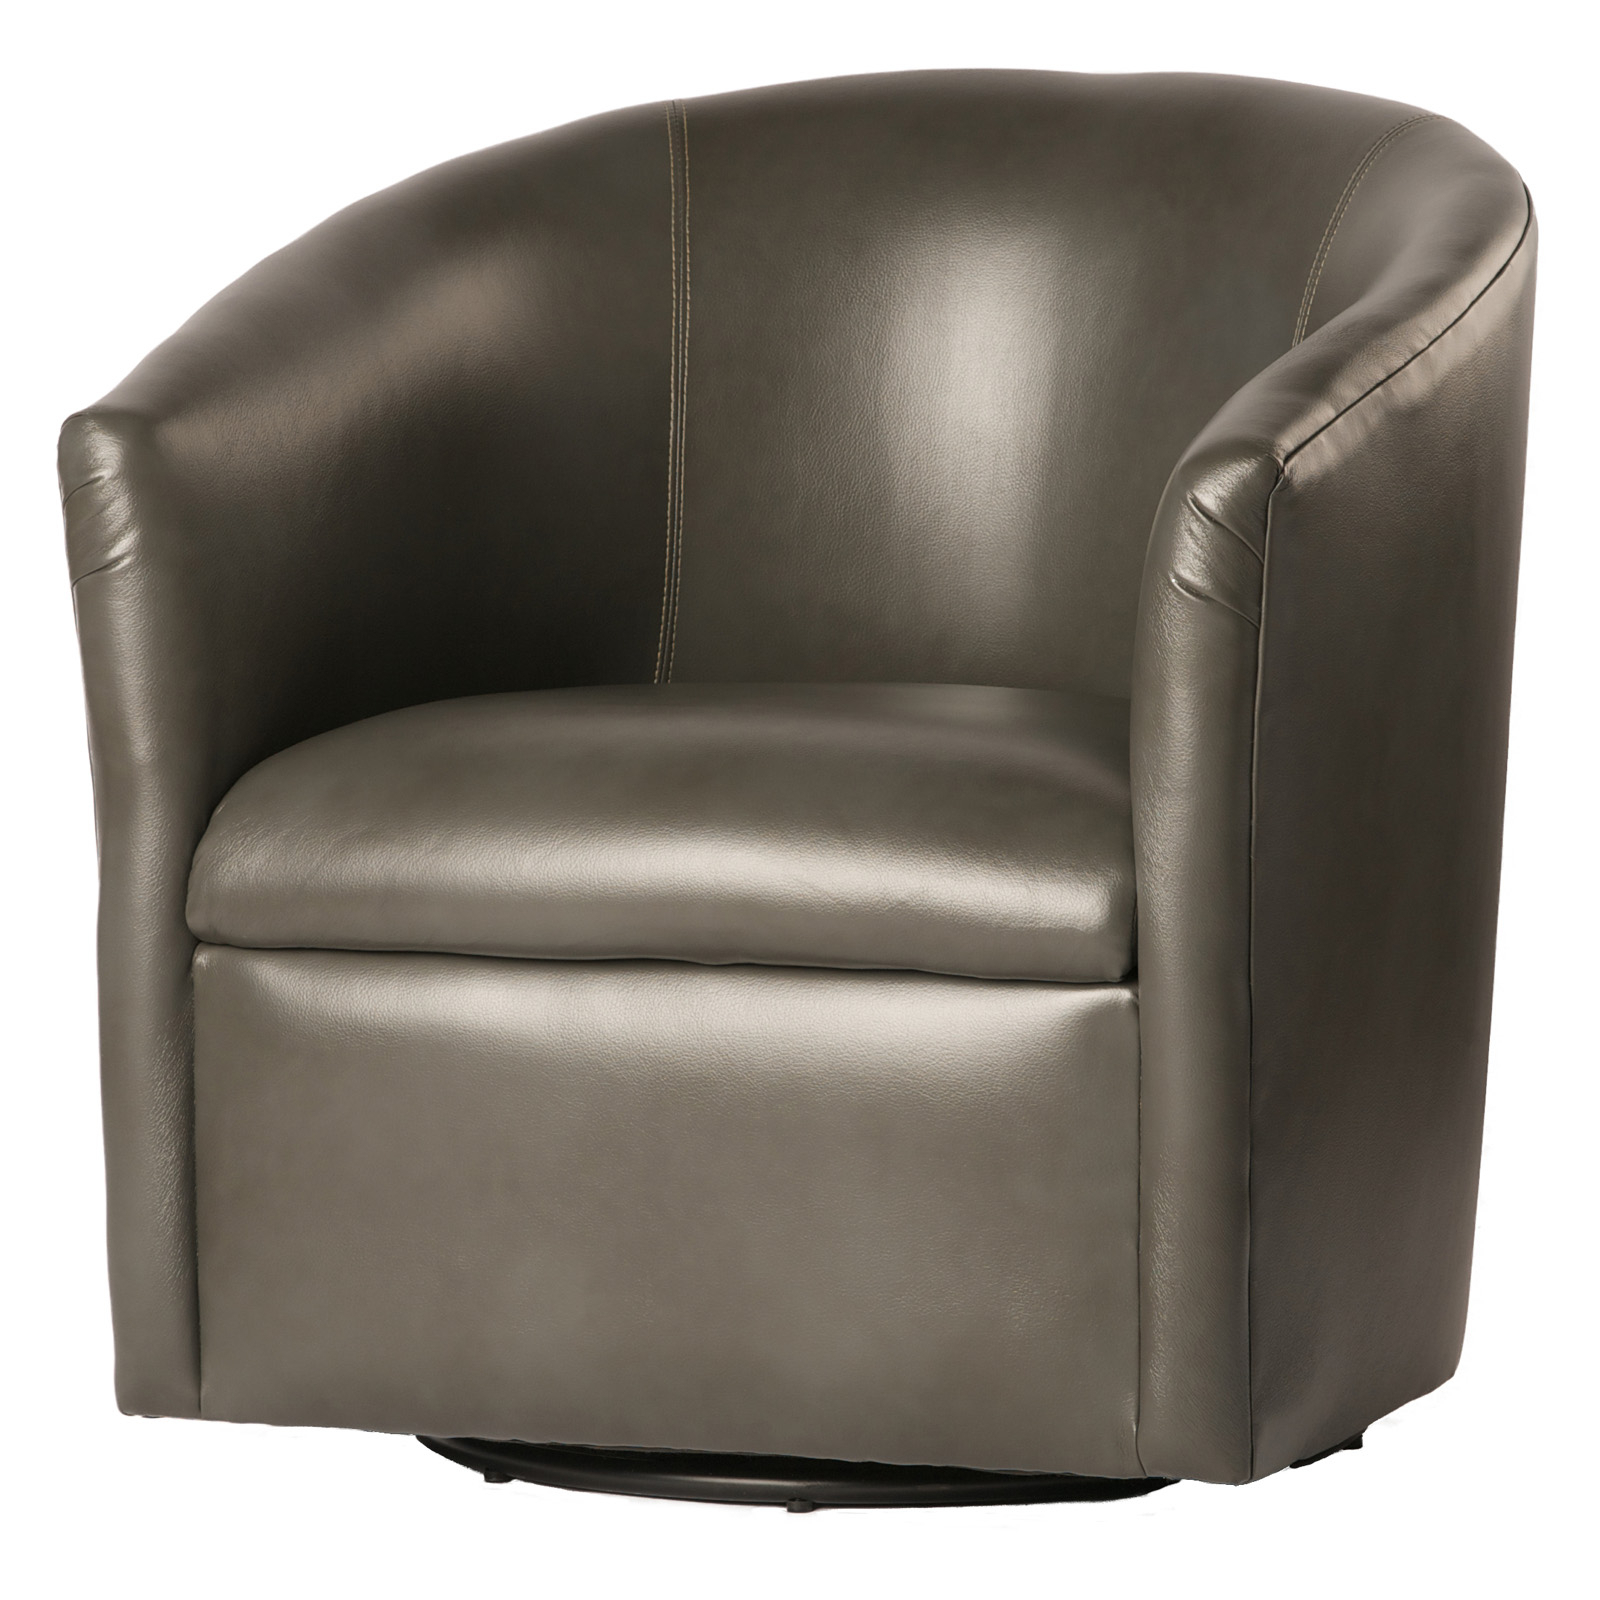 Comfort Pointe Draper Swivel Barrel Chair – Accent Chairs For Swivel Sofa Chairs (View 5 of 15)